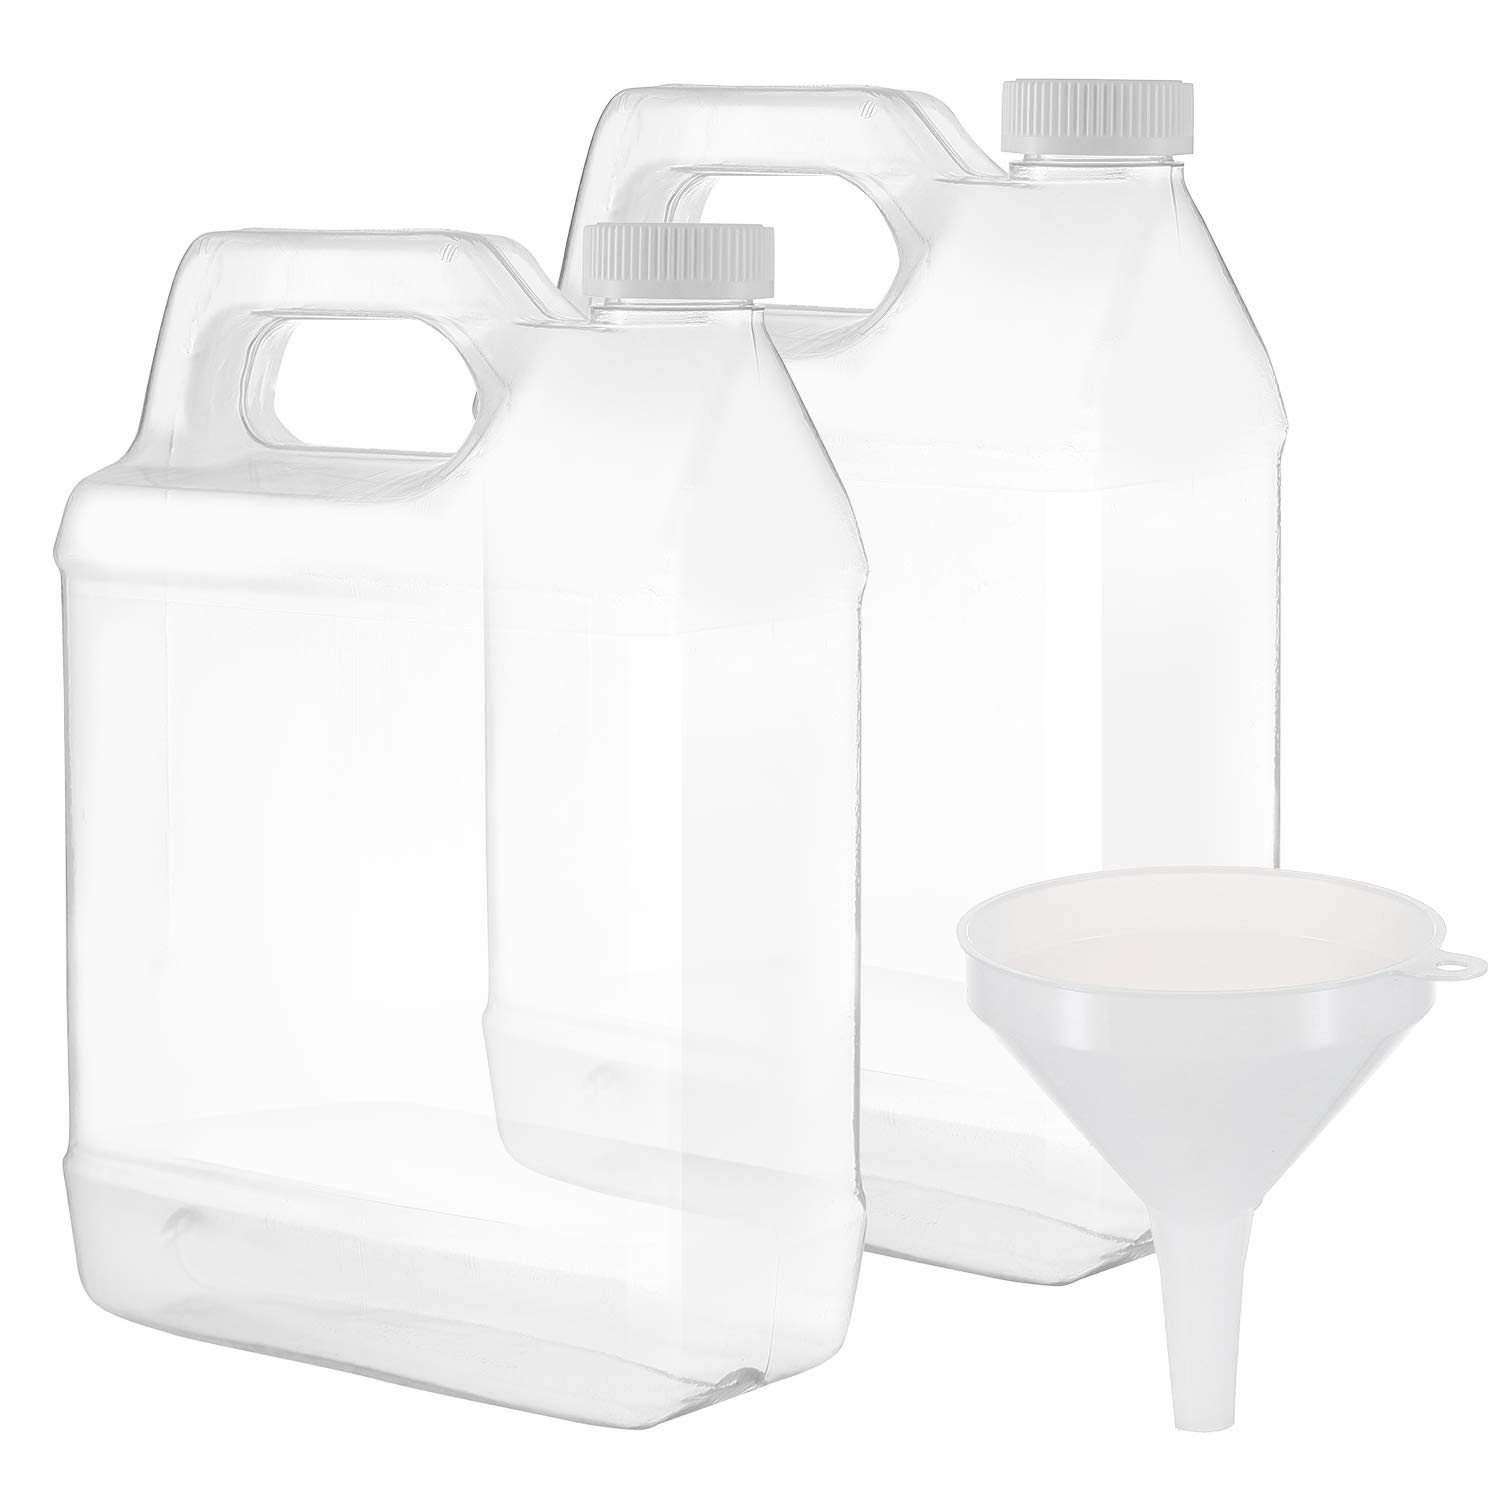 2 Pack - Plastic 1 Gallon Jug - Gallon Water Bottle - Clear Large Empty Gallon Jug F-Style with Child Resistant Airtight Lids - 128 oz Jugs with Caps and Funnel - for Commercial & Industrial Use by DilaBee